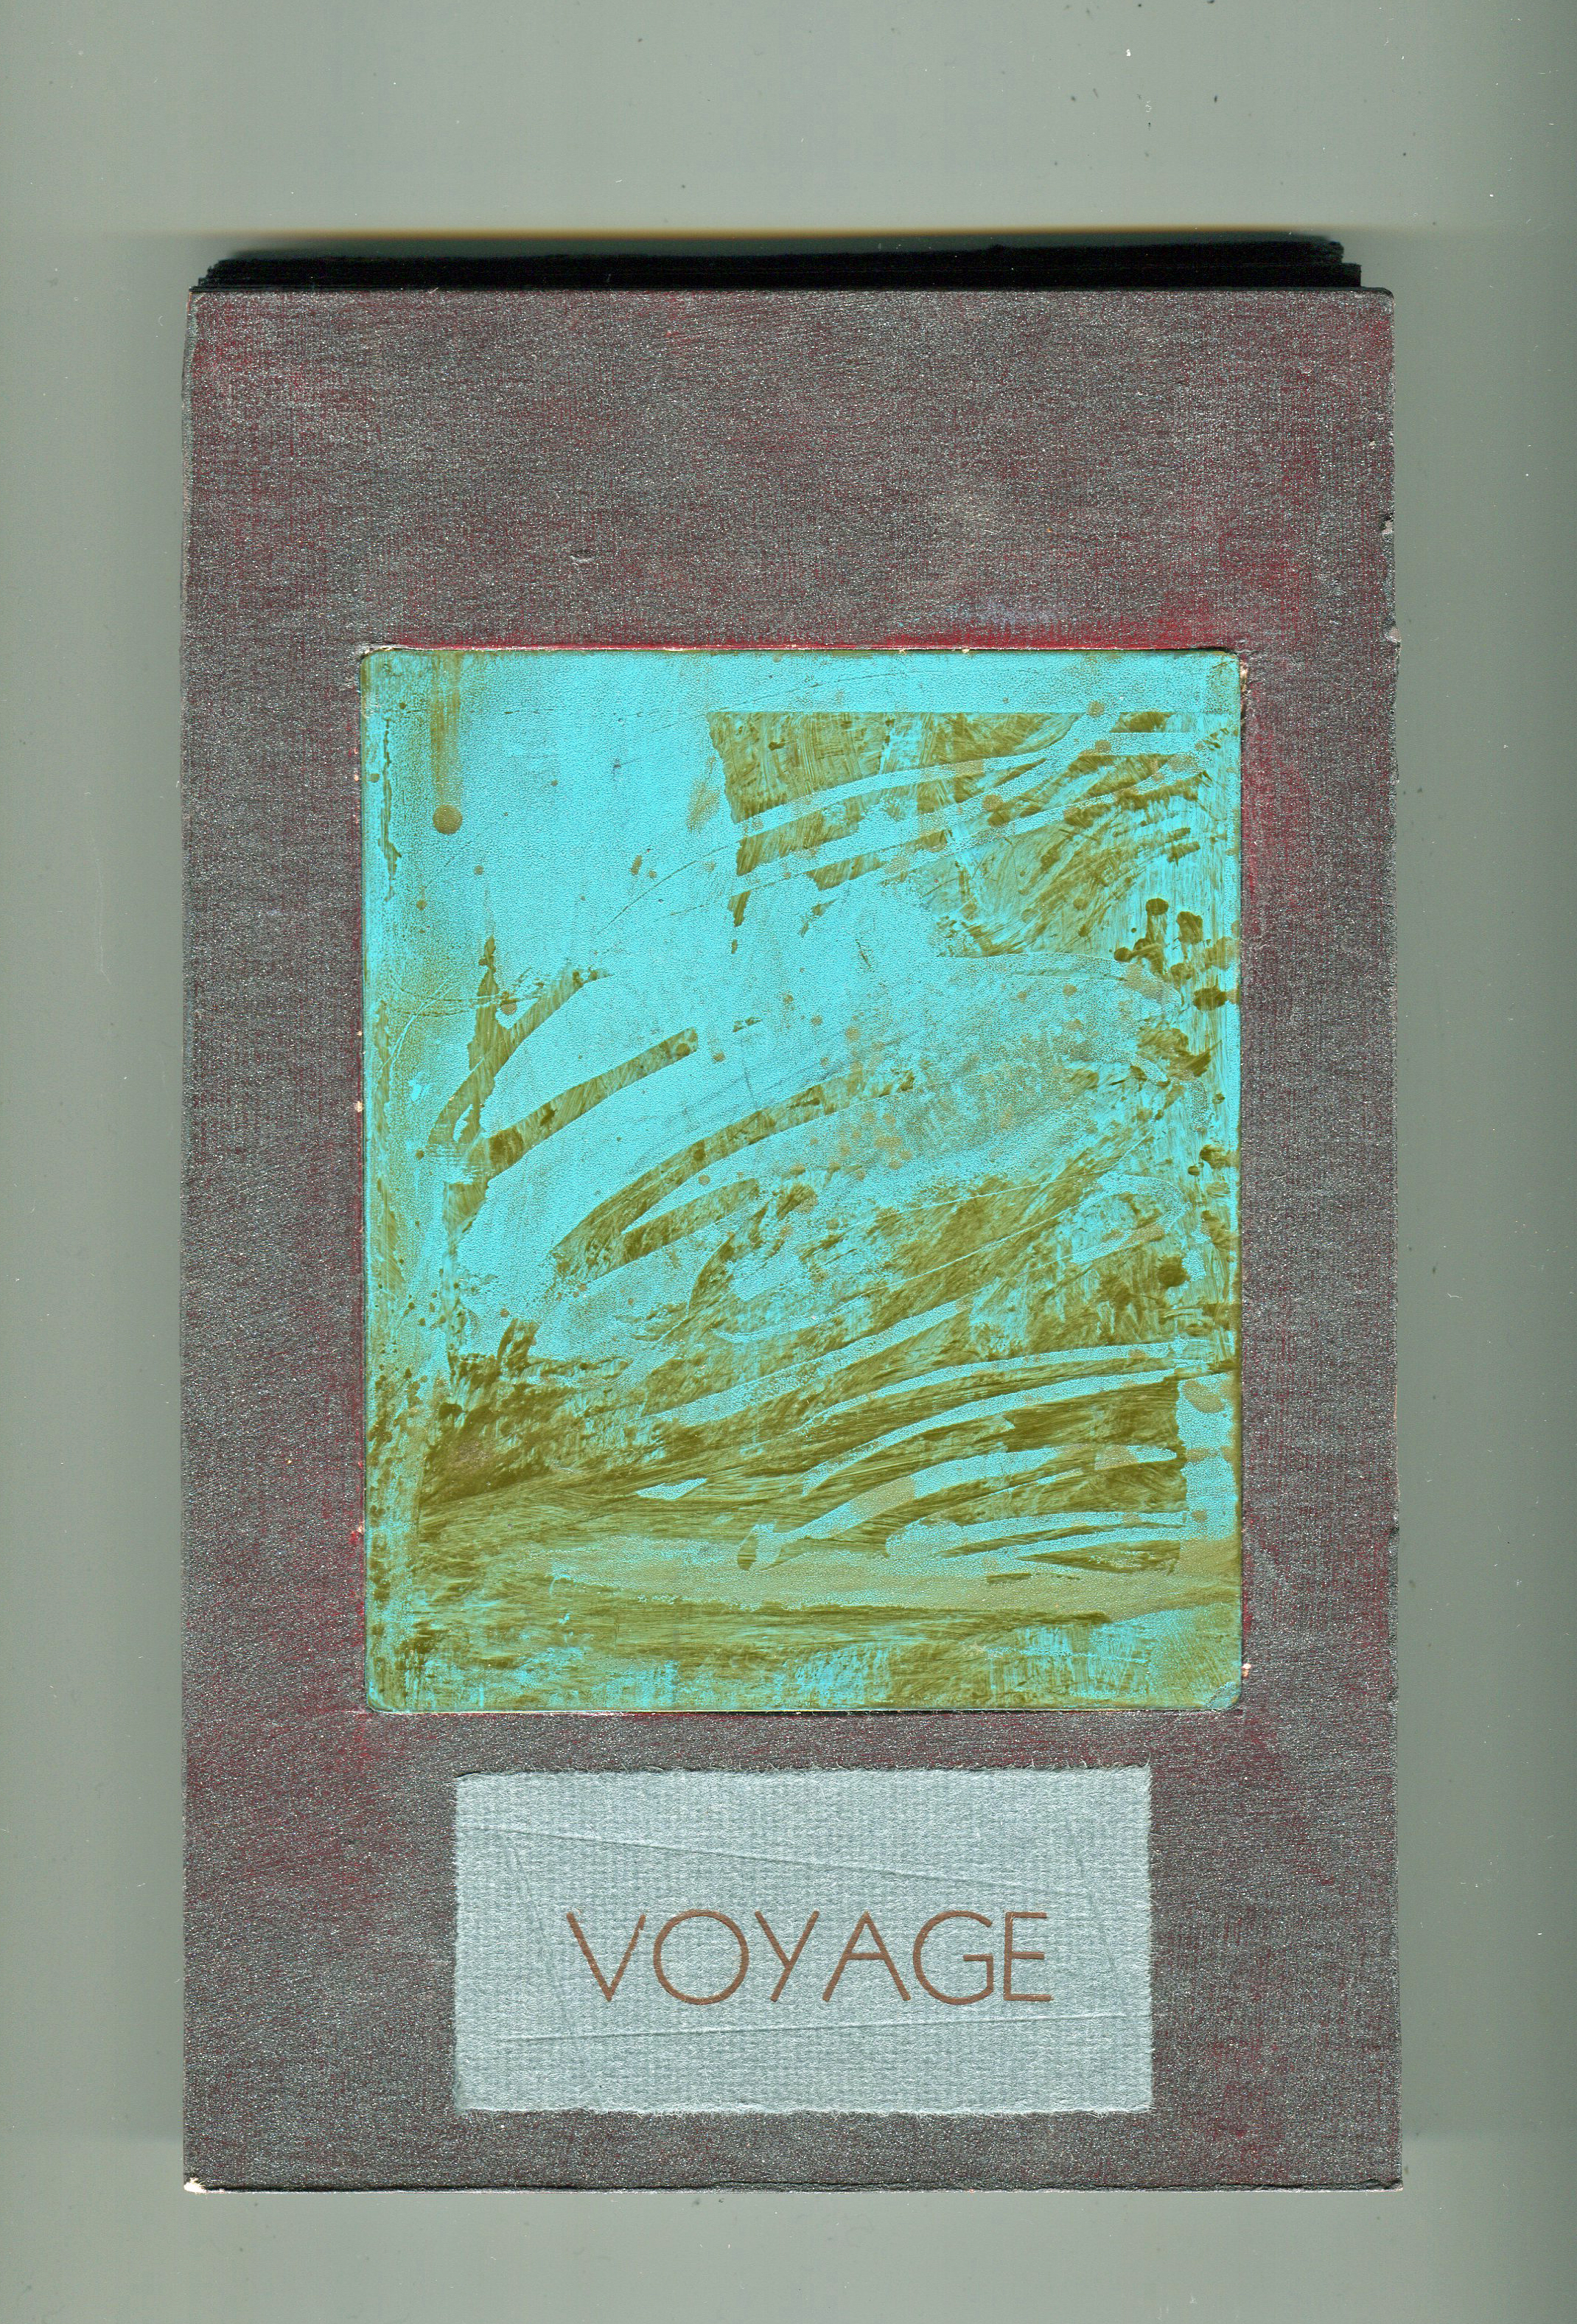 Voyage Cover with Polymer Plate Inset.jpg